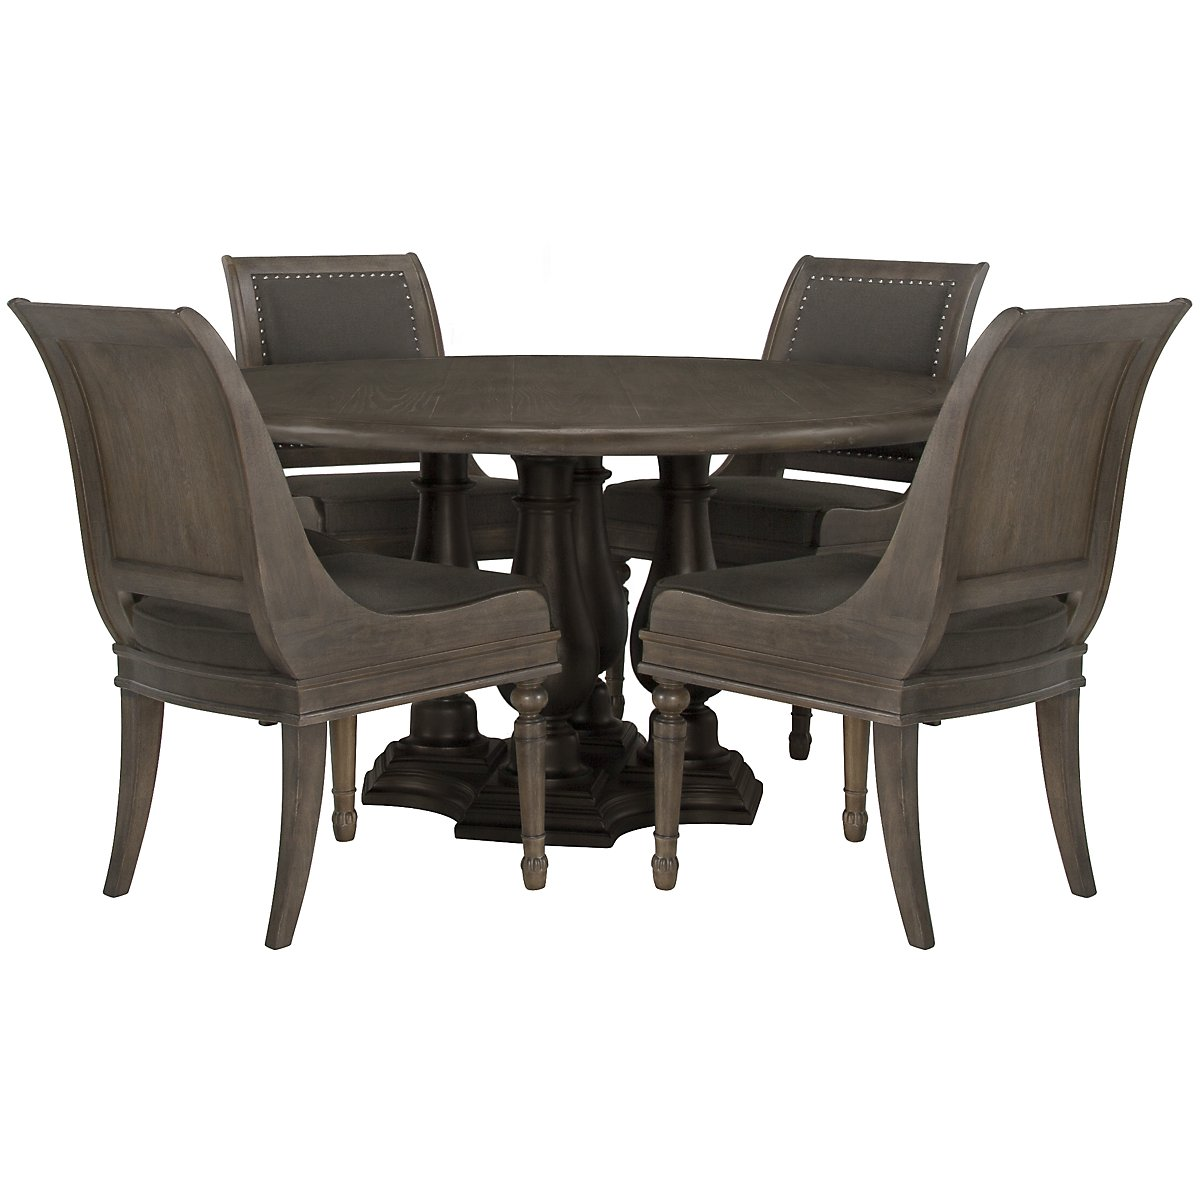 Belgian Oak Light Tone Round Table & 4 Sloped Chairs